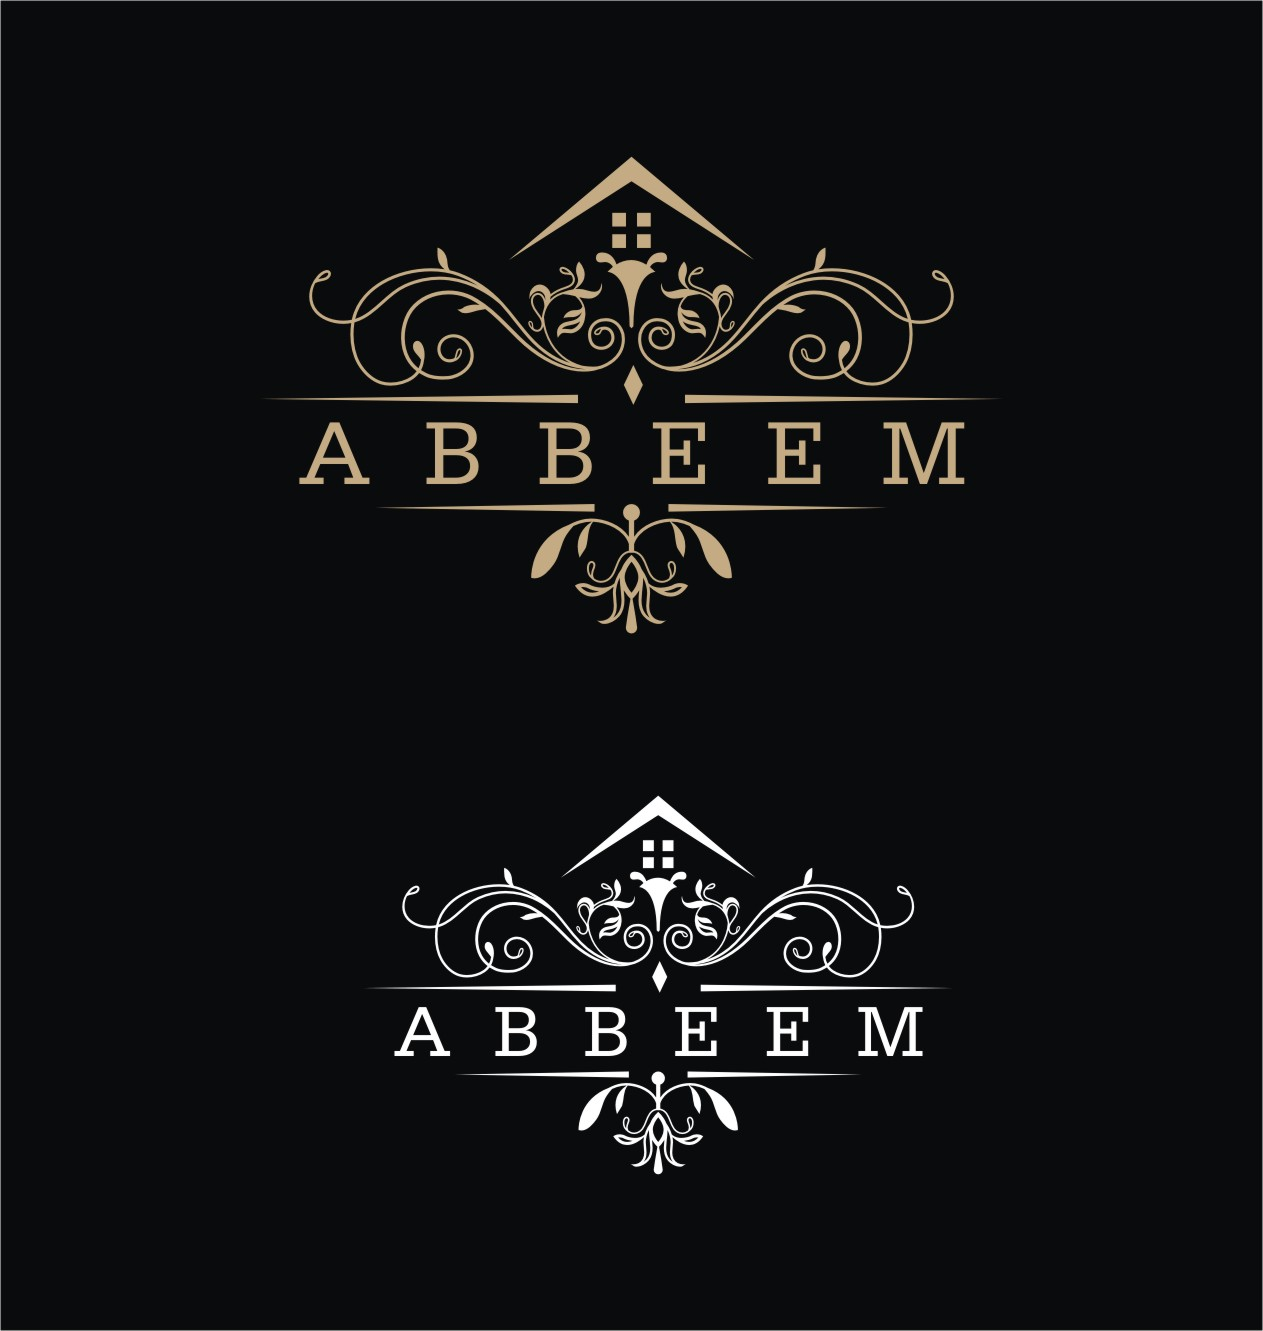 Logo Design by Spider Graphics - Entry No. 183 in the Logo Design Contest Luxury Logo Design for Abbeem.